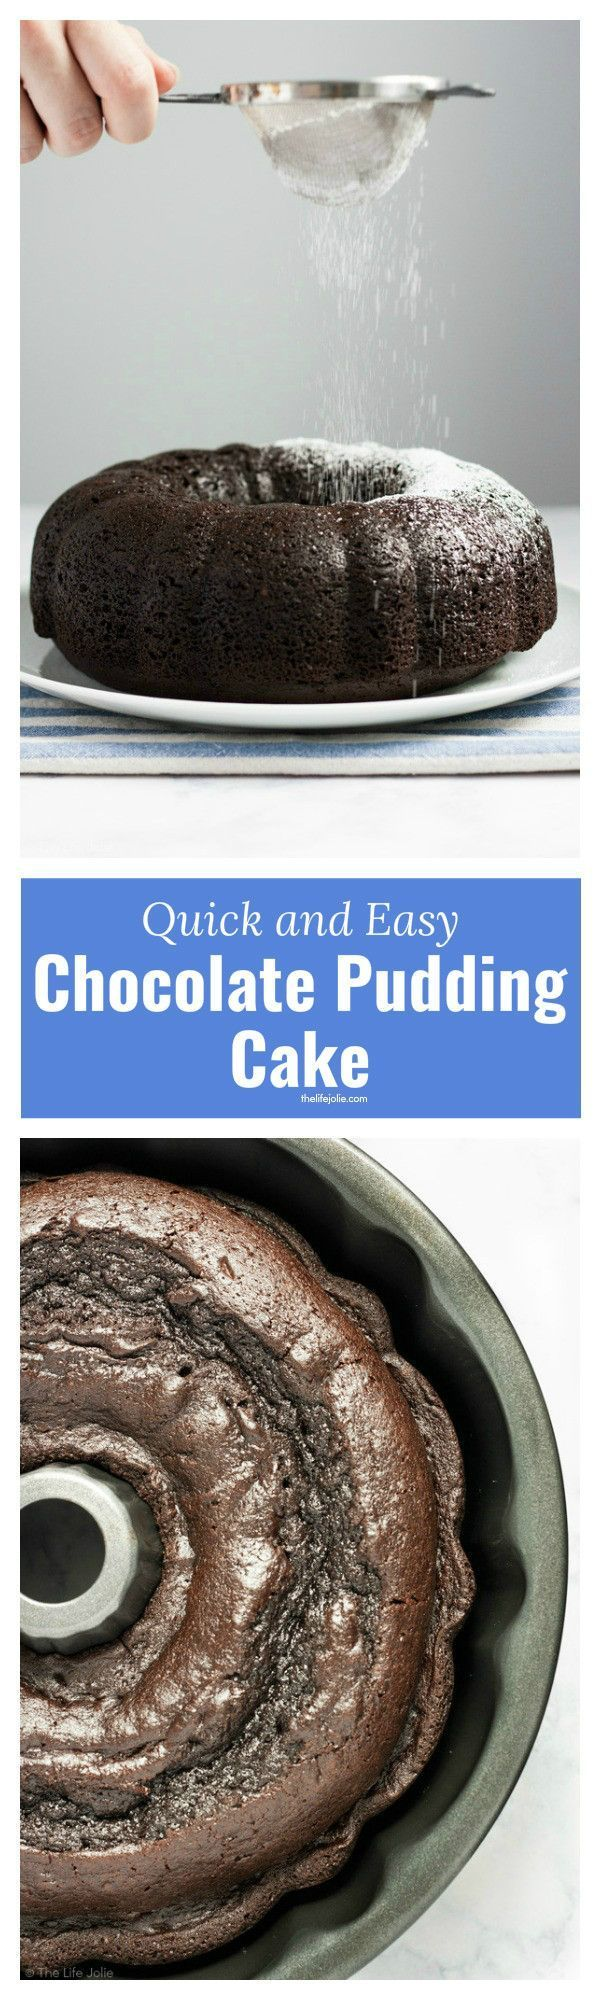 This quick and easy Chocolate Pudding Cake recipe is a delicious cake mix hack! There are only five simple ingredients and the result is the most perfectly moist cake you'll ever taste. This is an awesome last-minute dessert to throw together and it